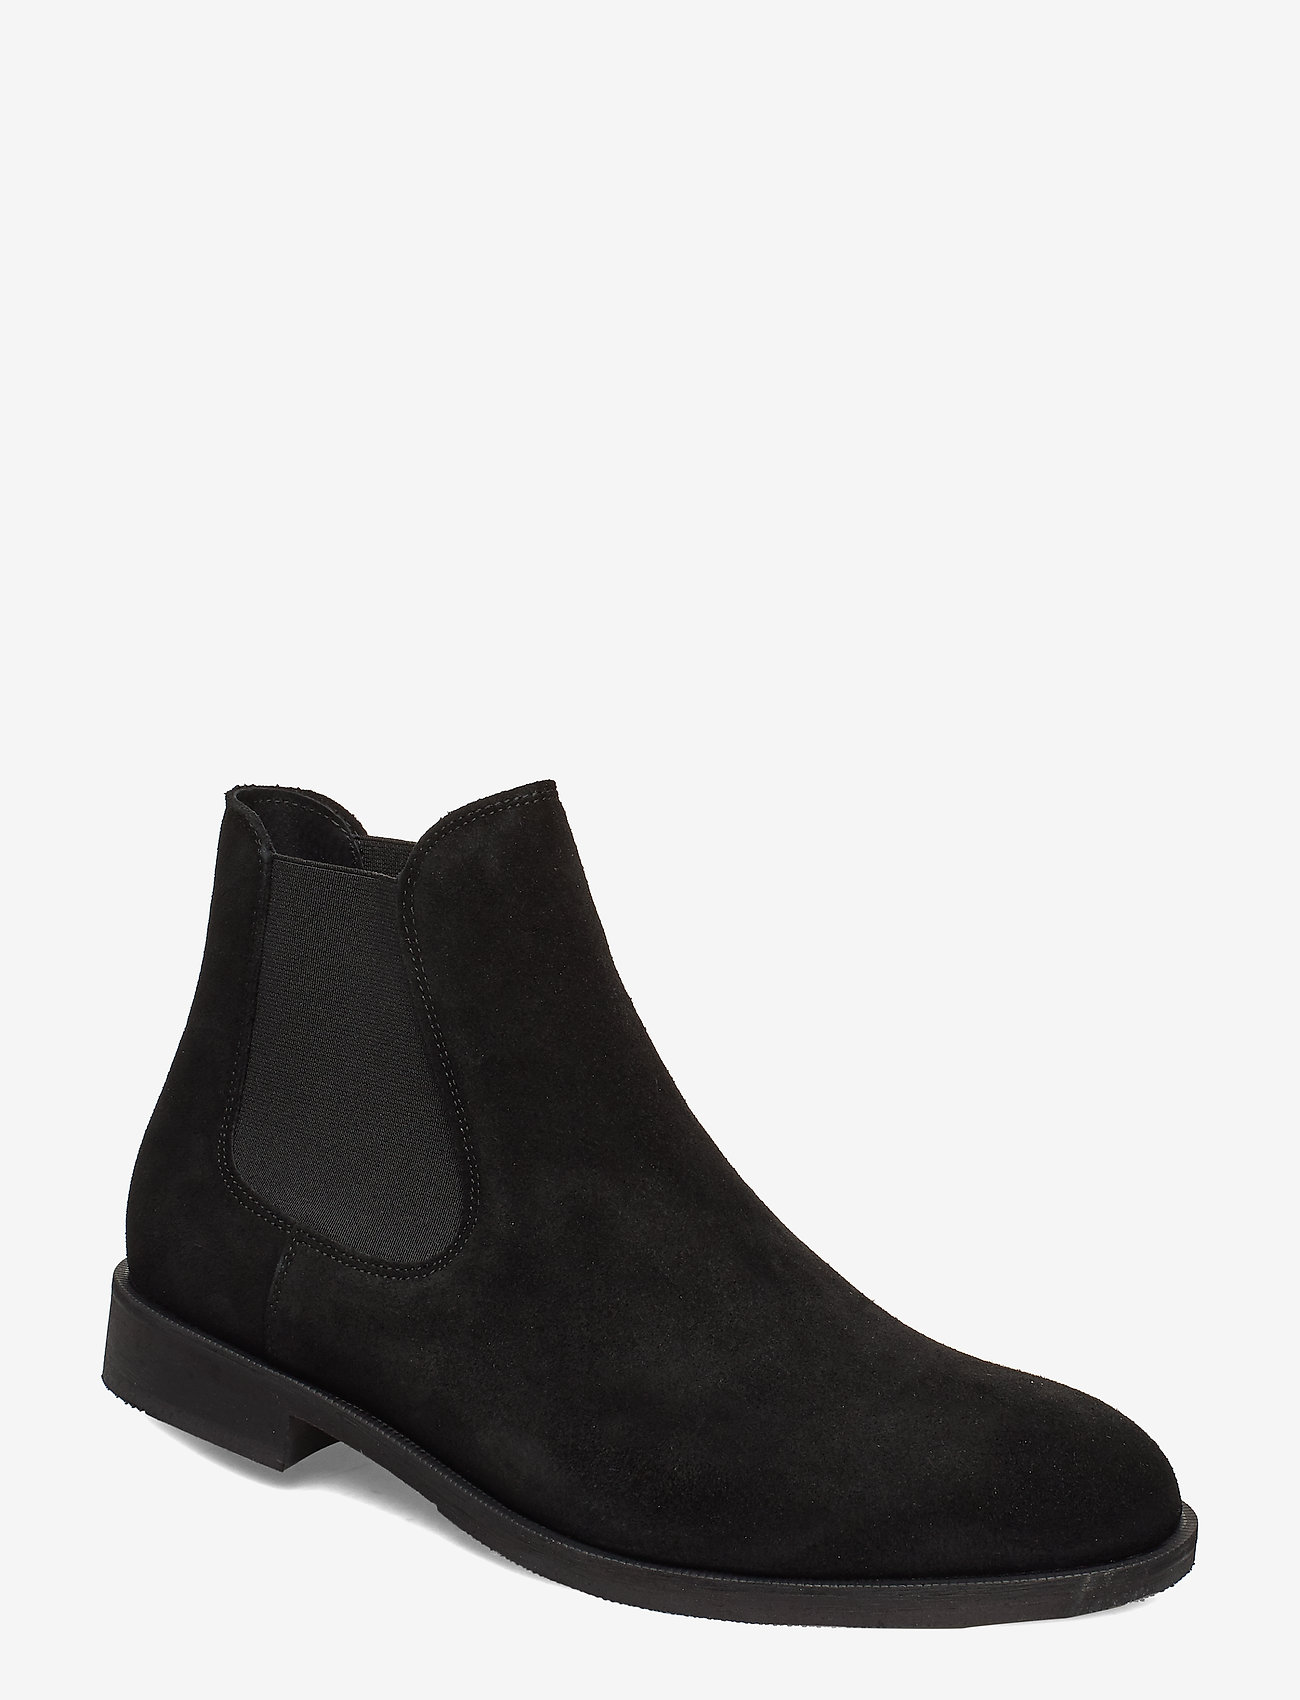 Selected Homme - SLHLOUIS SUEDE CHELSEA BOOT B NOOS - chelsea boots - black - 0